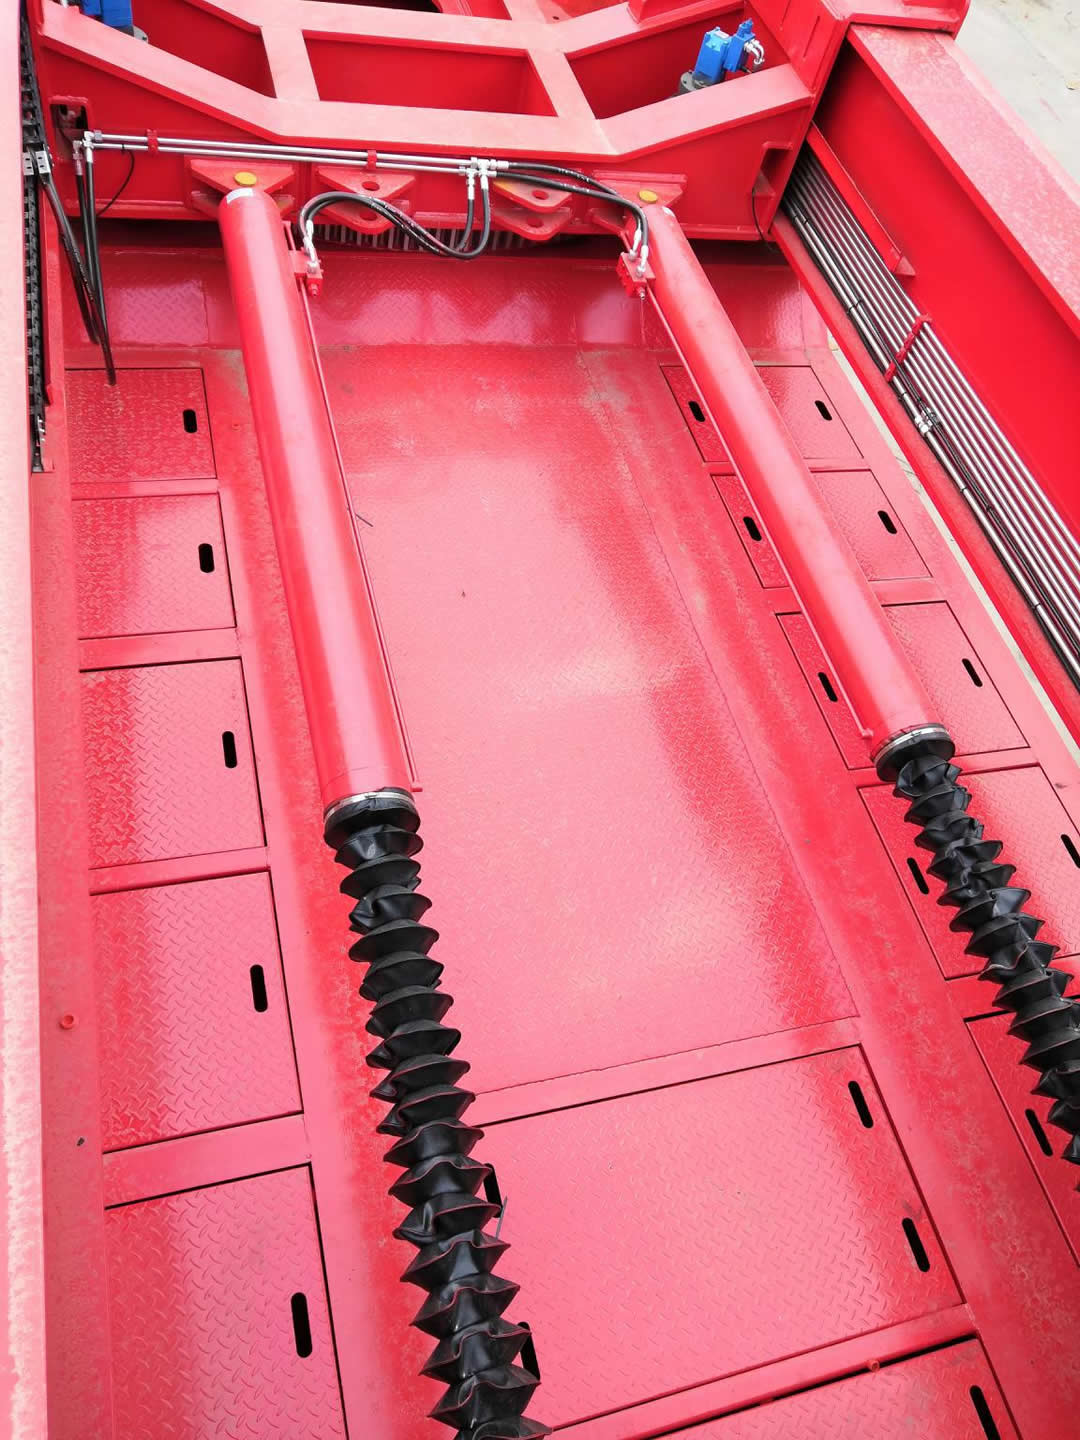 Long hydraulic cylinders enable the adaptor extendable in length